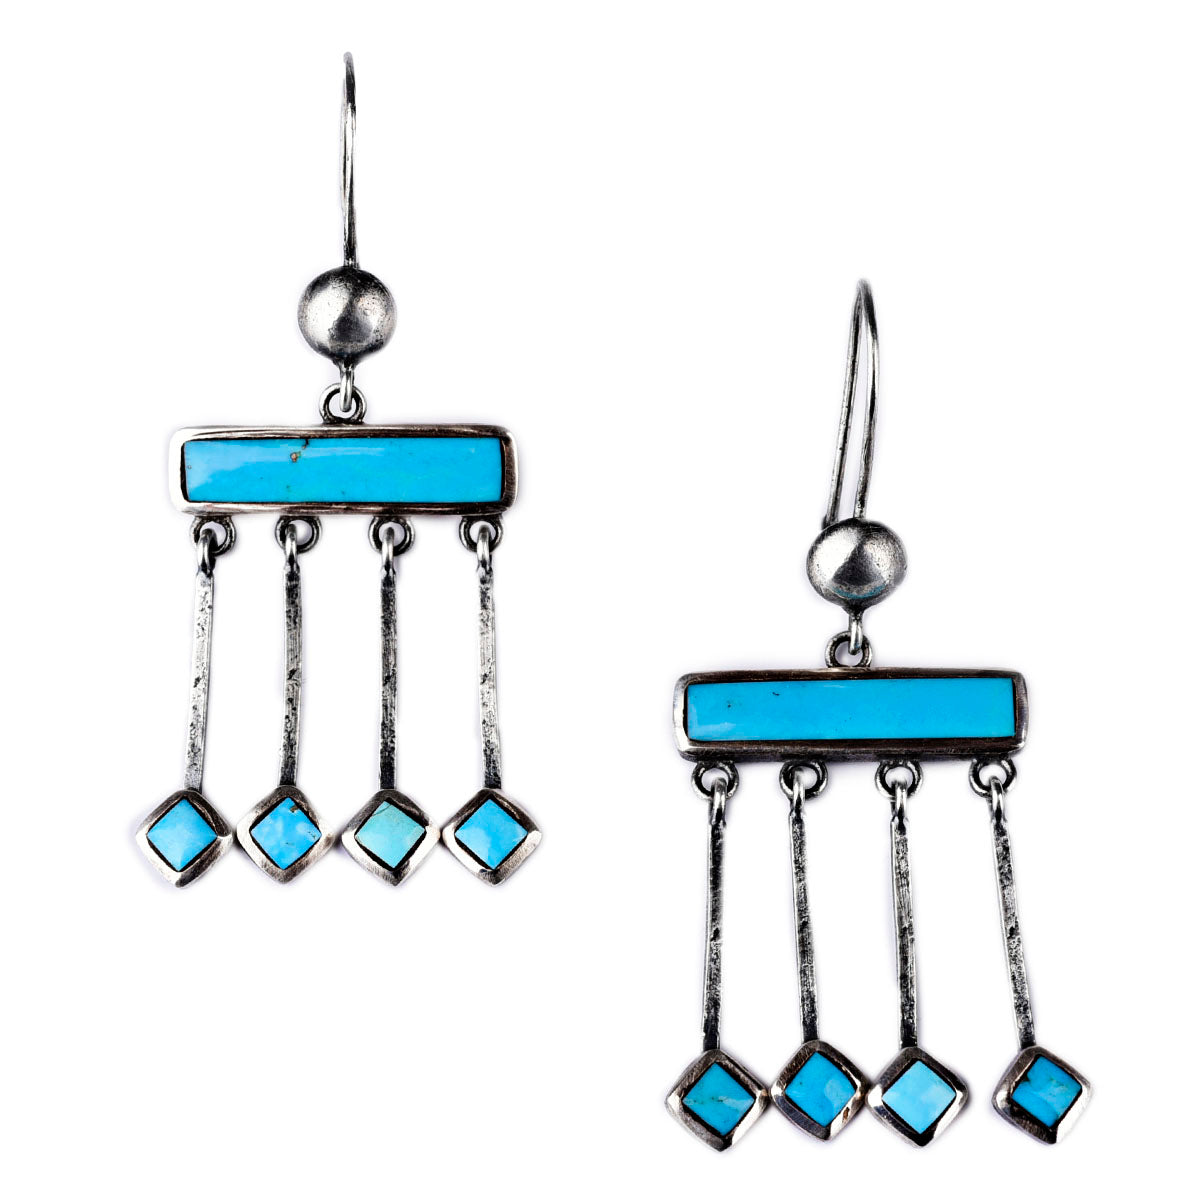 Earrings, Novelty, Sterling Silver & Turquoise, Zuni Rain, 332